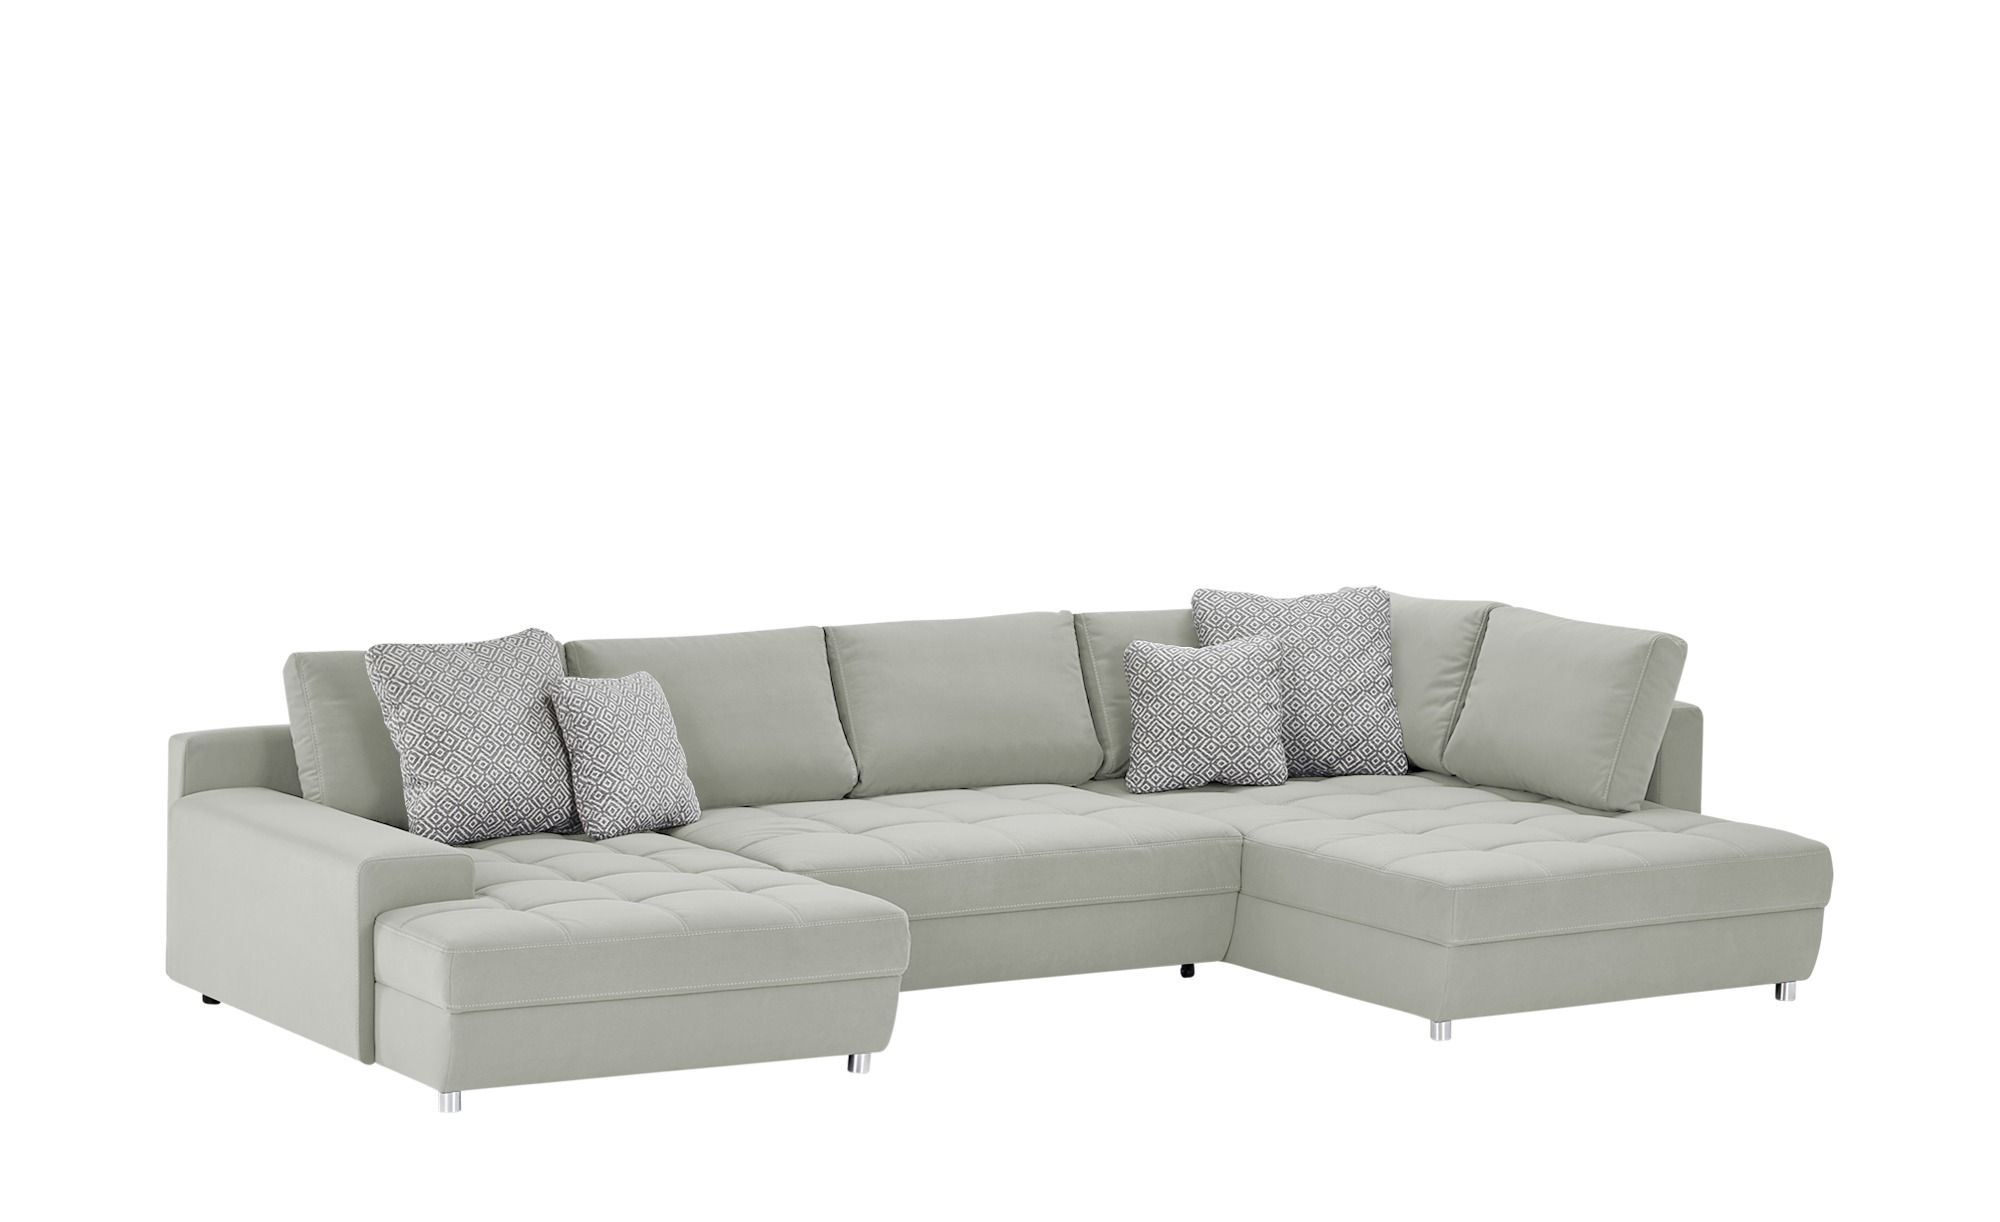 Bobb Wohnlandschaft Arissa Decor Sectional Couch